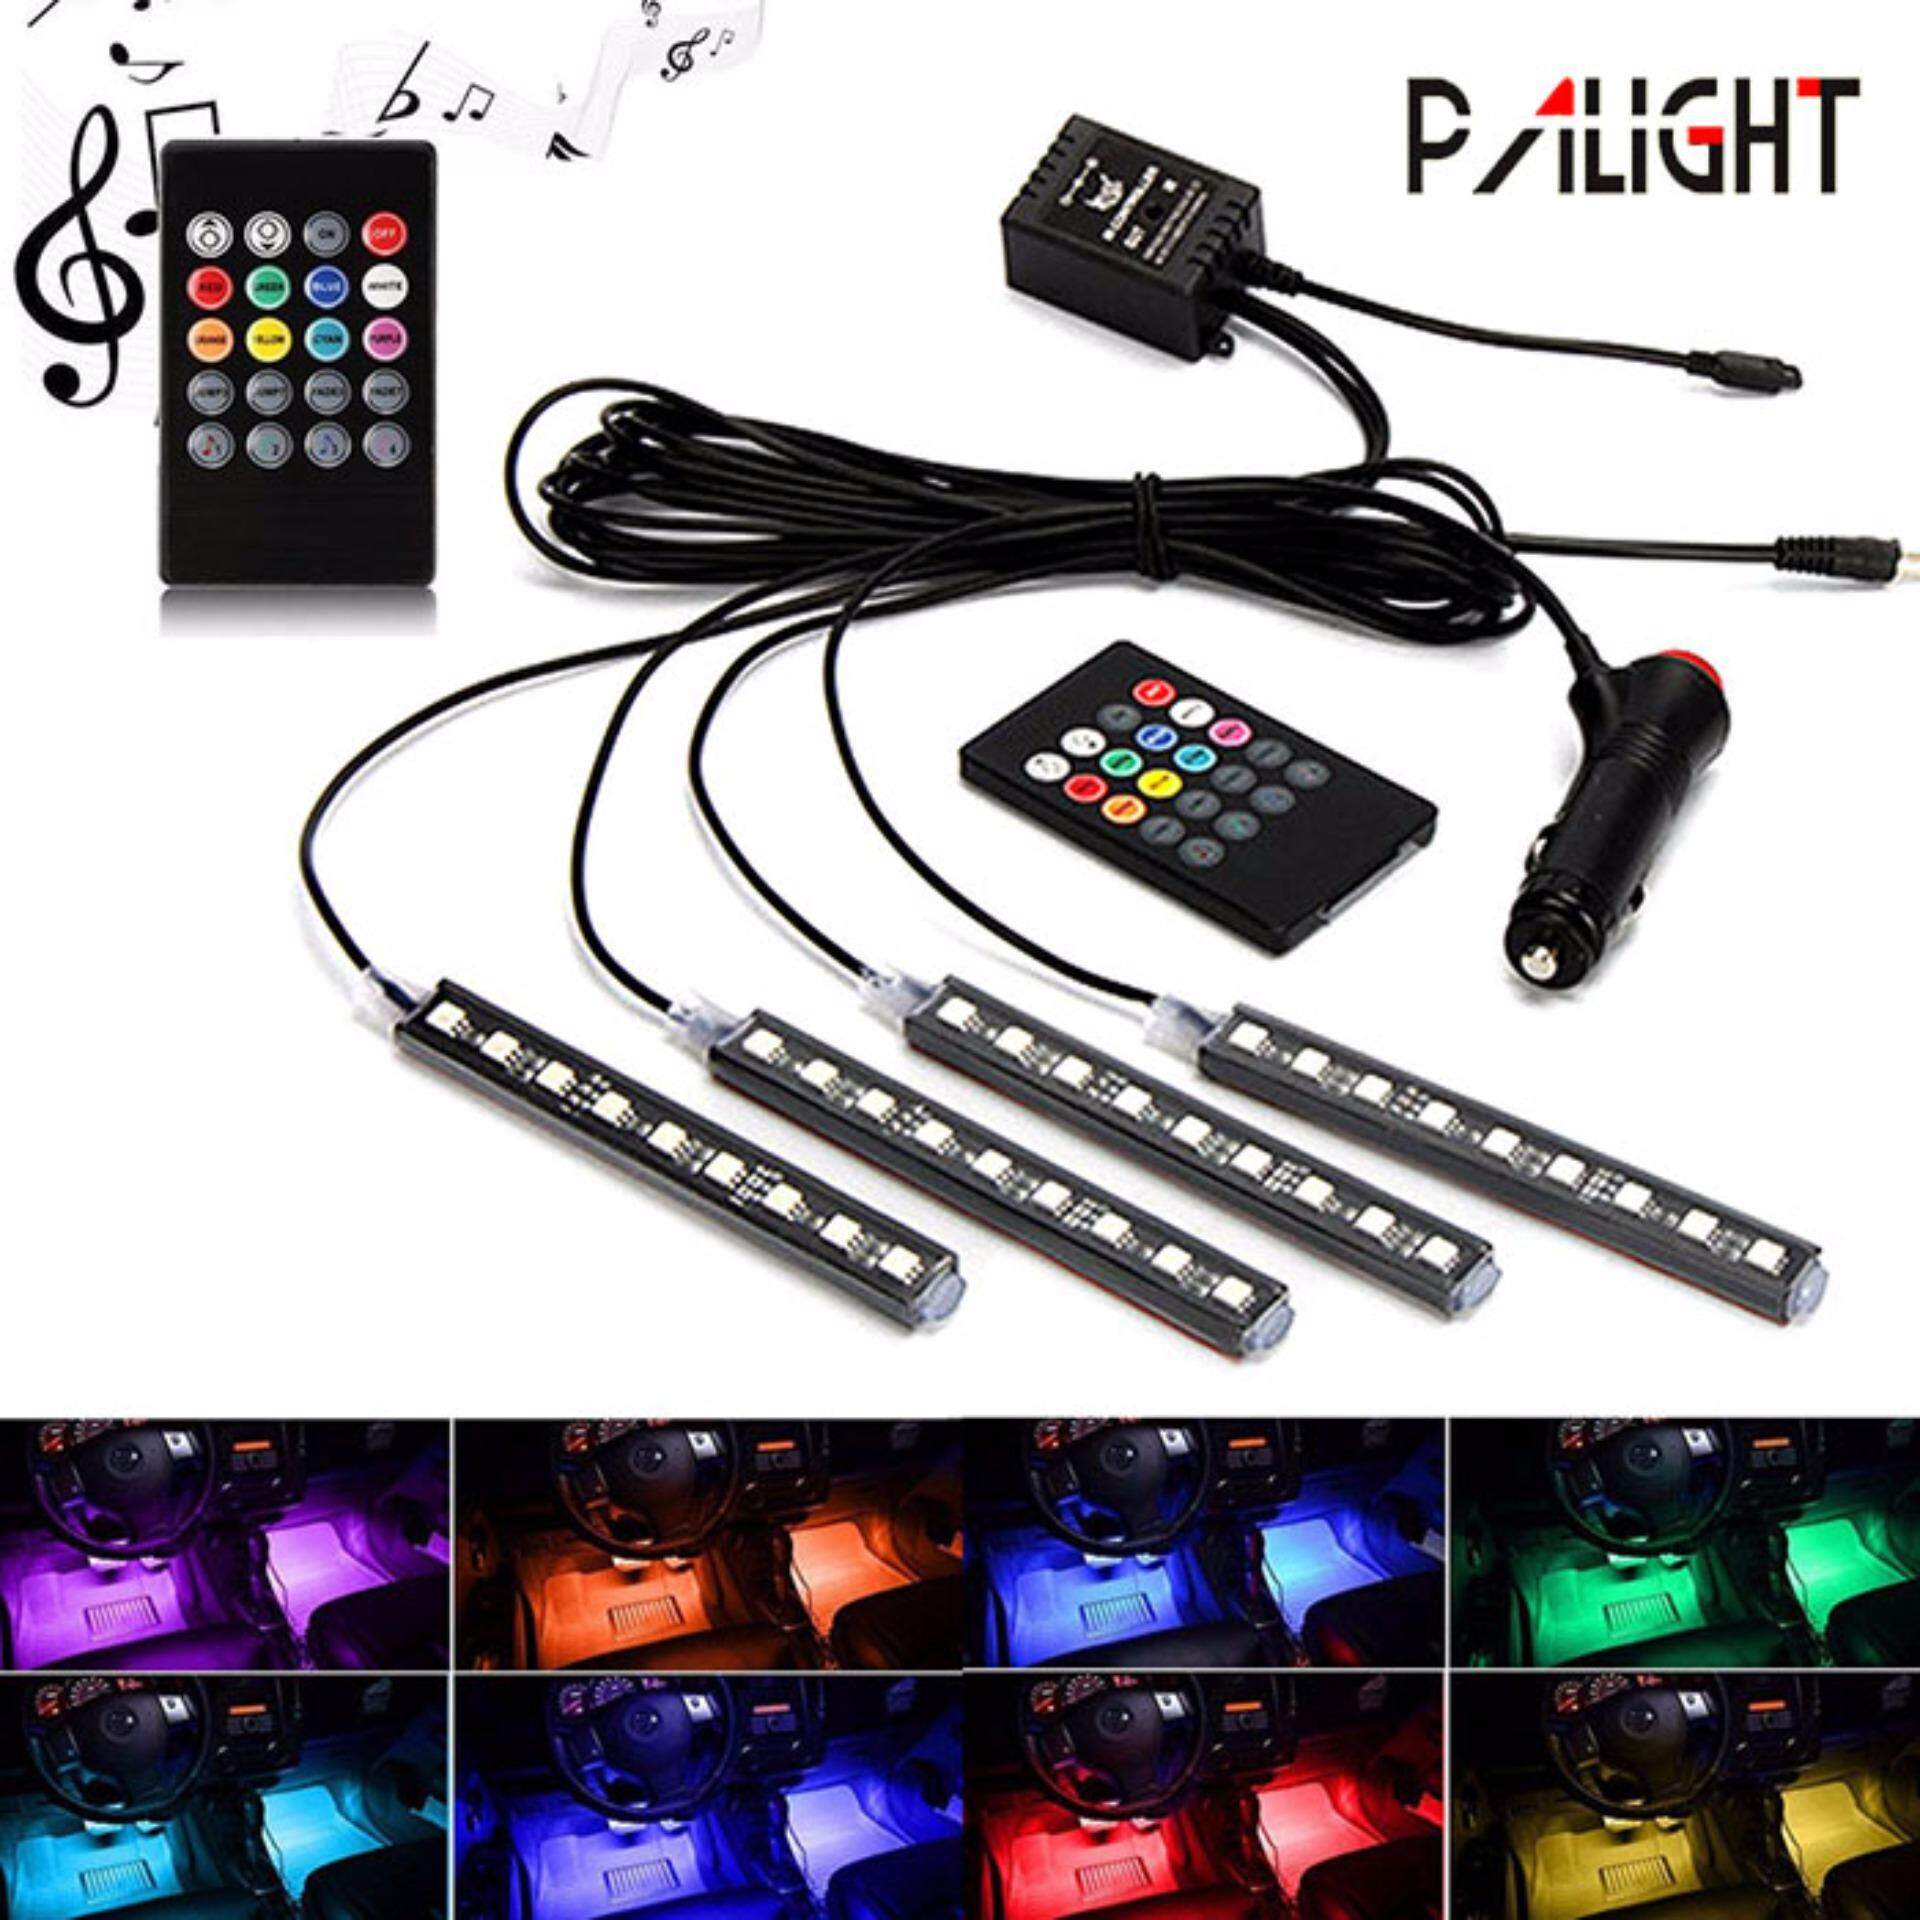 【Global Express Delivery+Free shipping】PAlight Car Interior Atmosphere Neon Light LED Multi Color RGB Voice Sensor Sound Music Control Decor Lamp(MY)